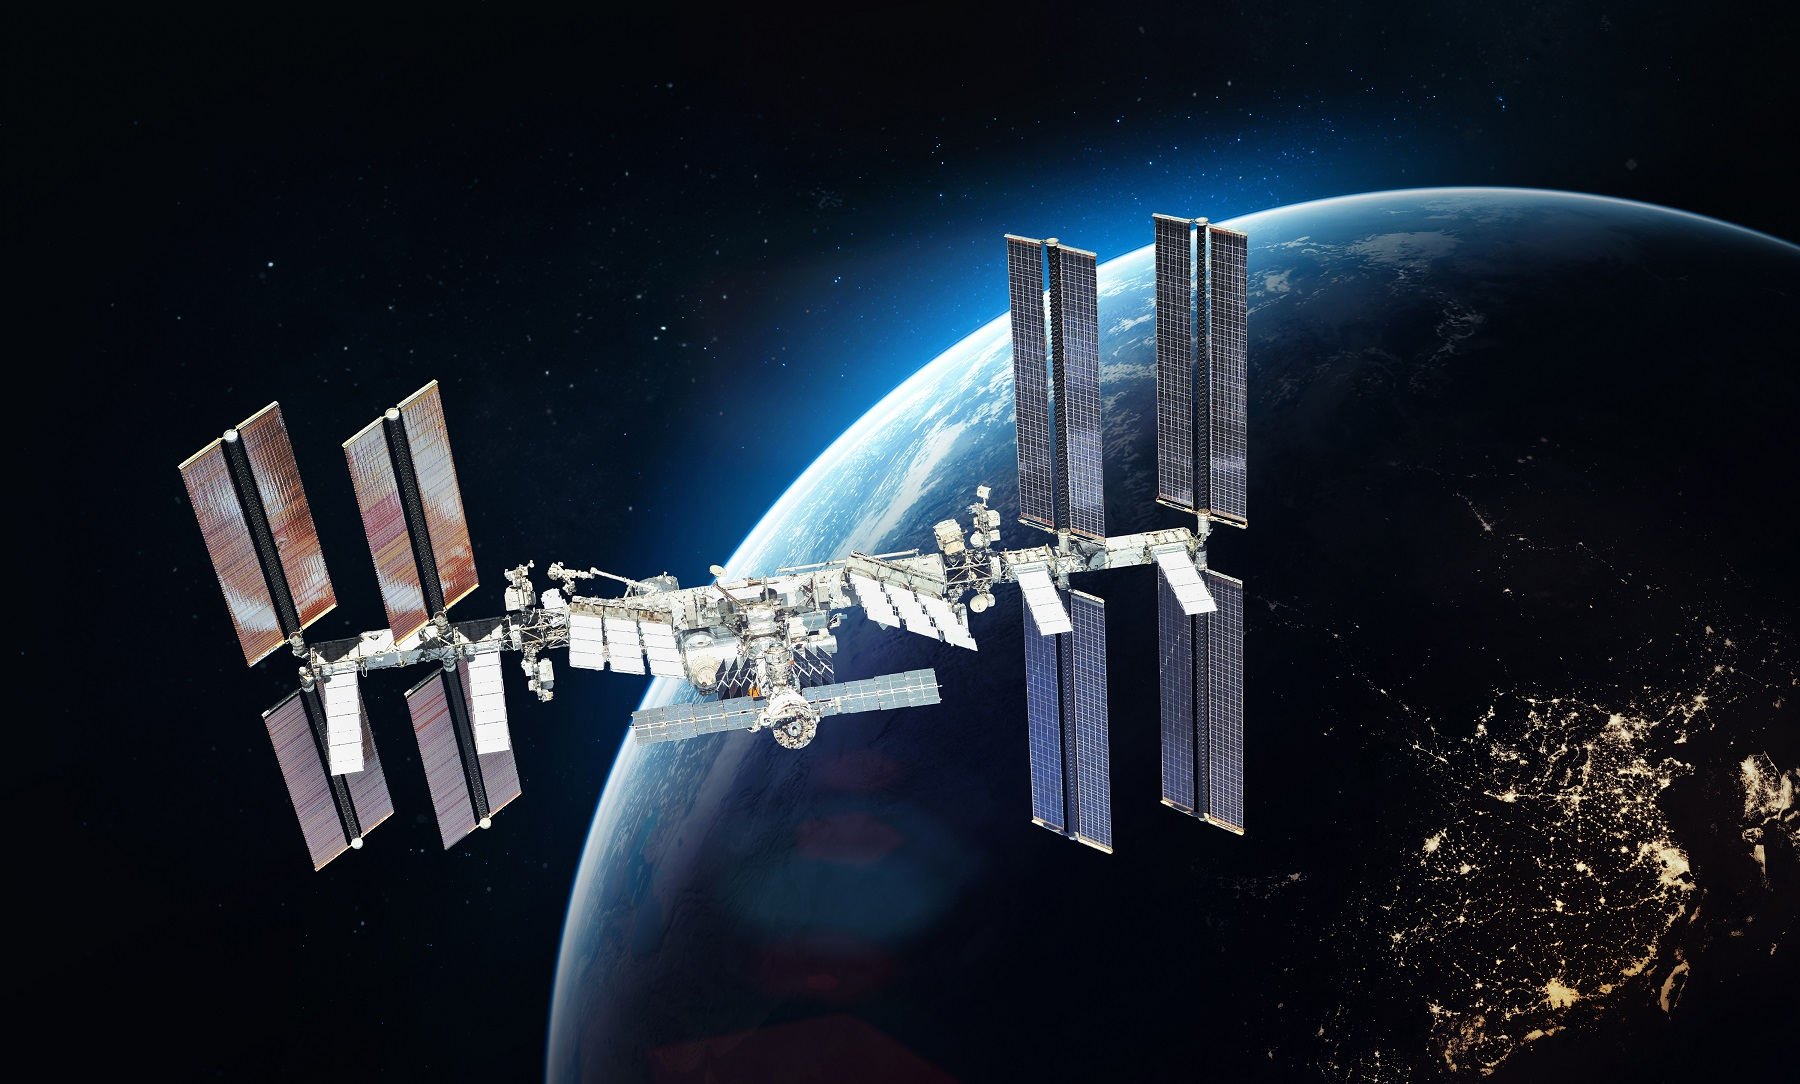 NASA and Estee Lauder Will Advertise From the International Space Station Art Books Events